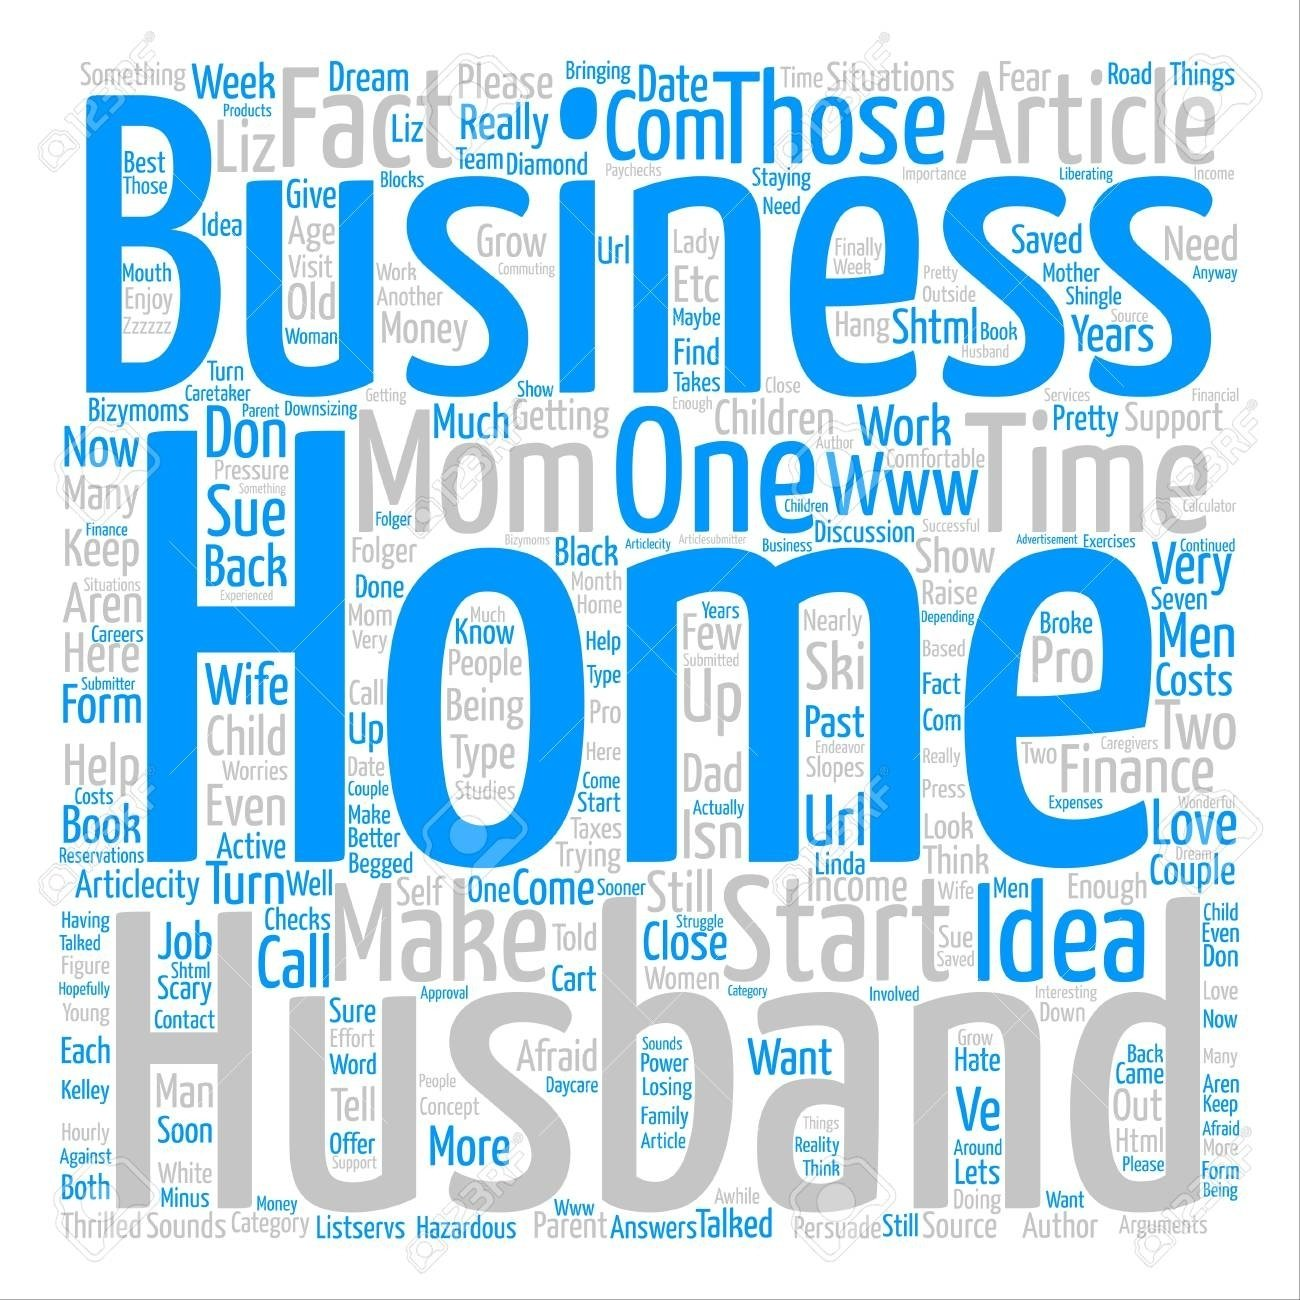 10 Fabulous Husband And Wife Business Ideas how to get your husband to back your home business idea text 2020